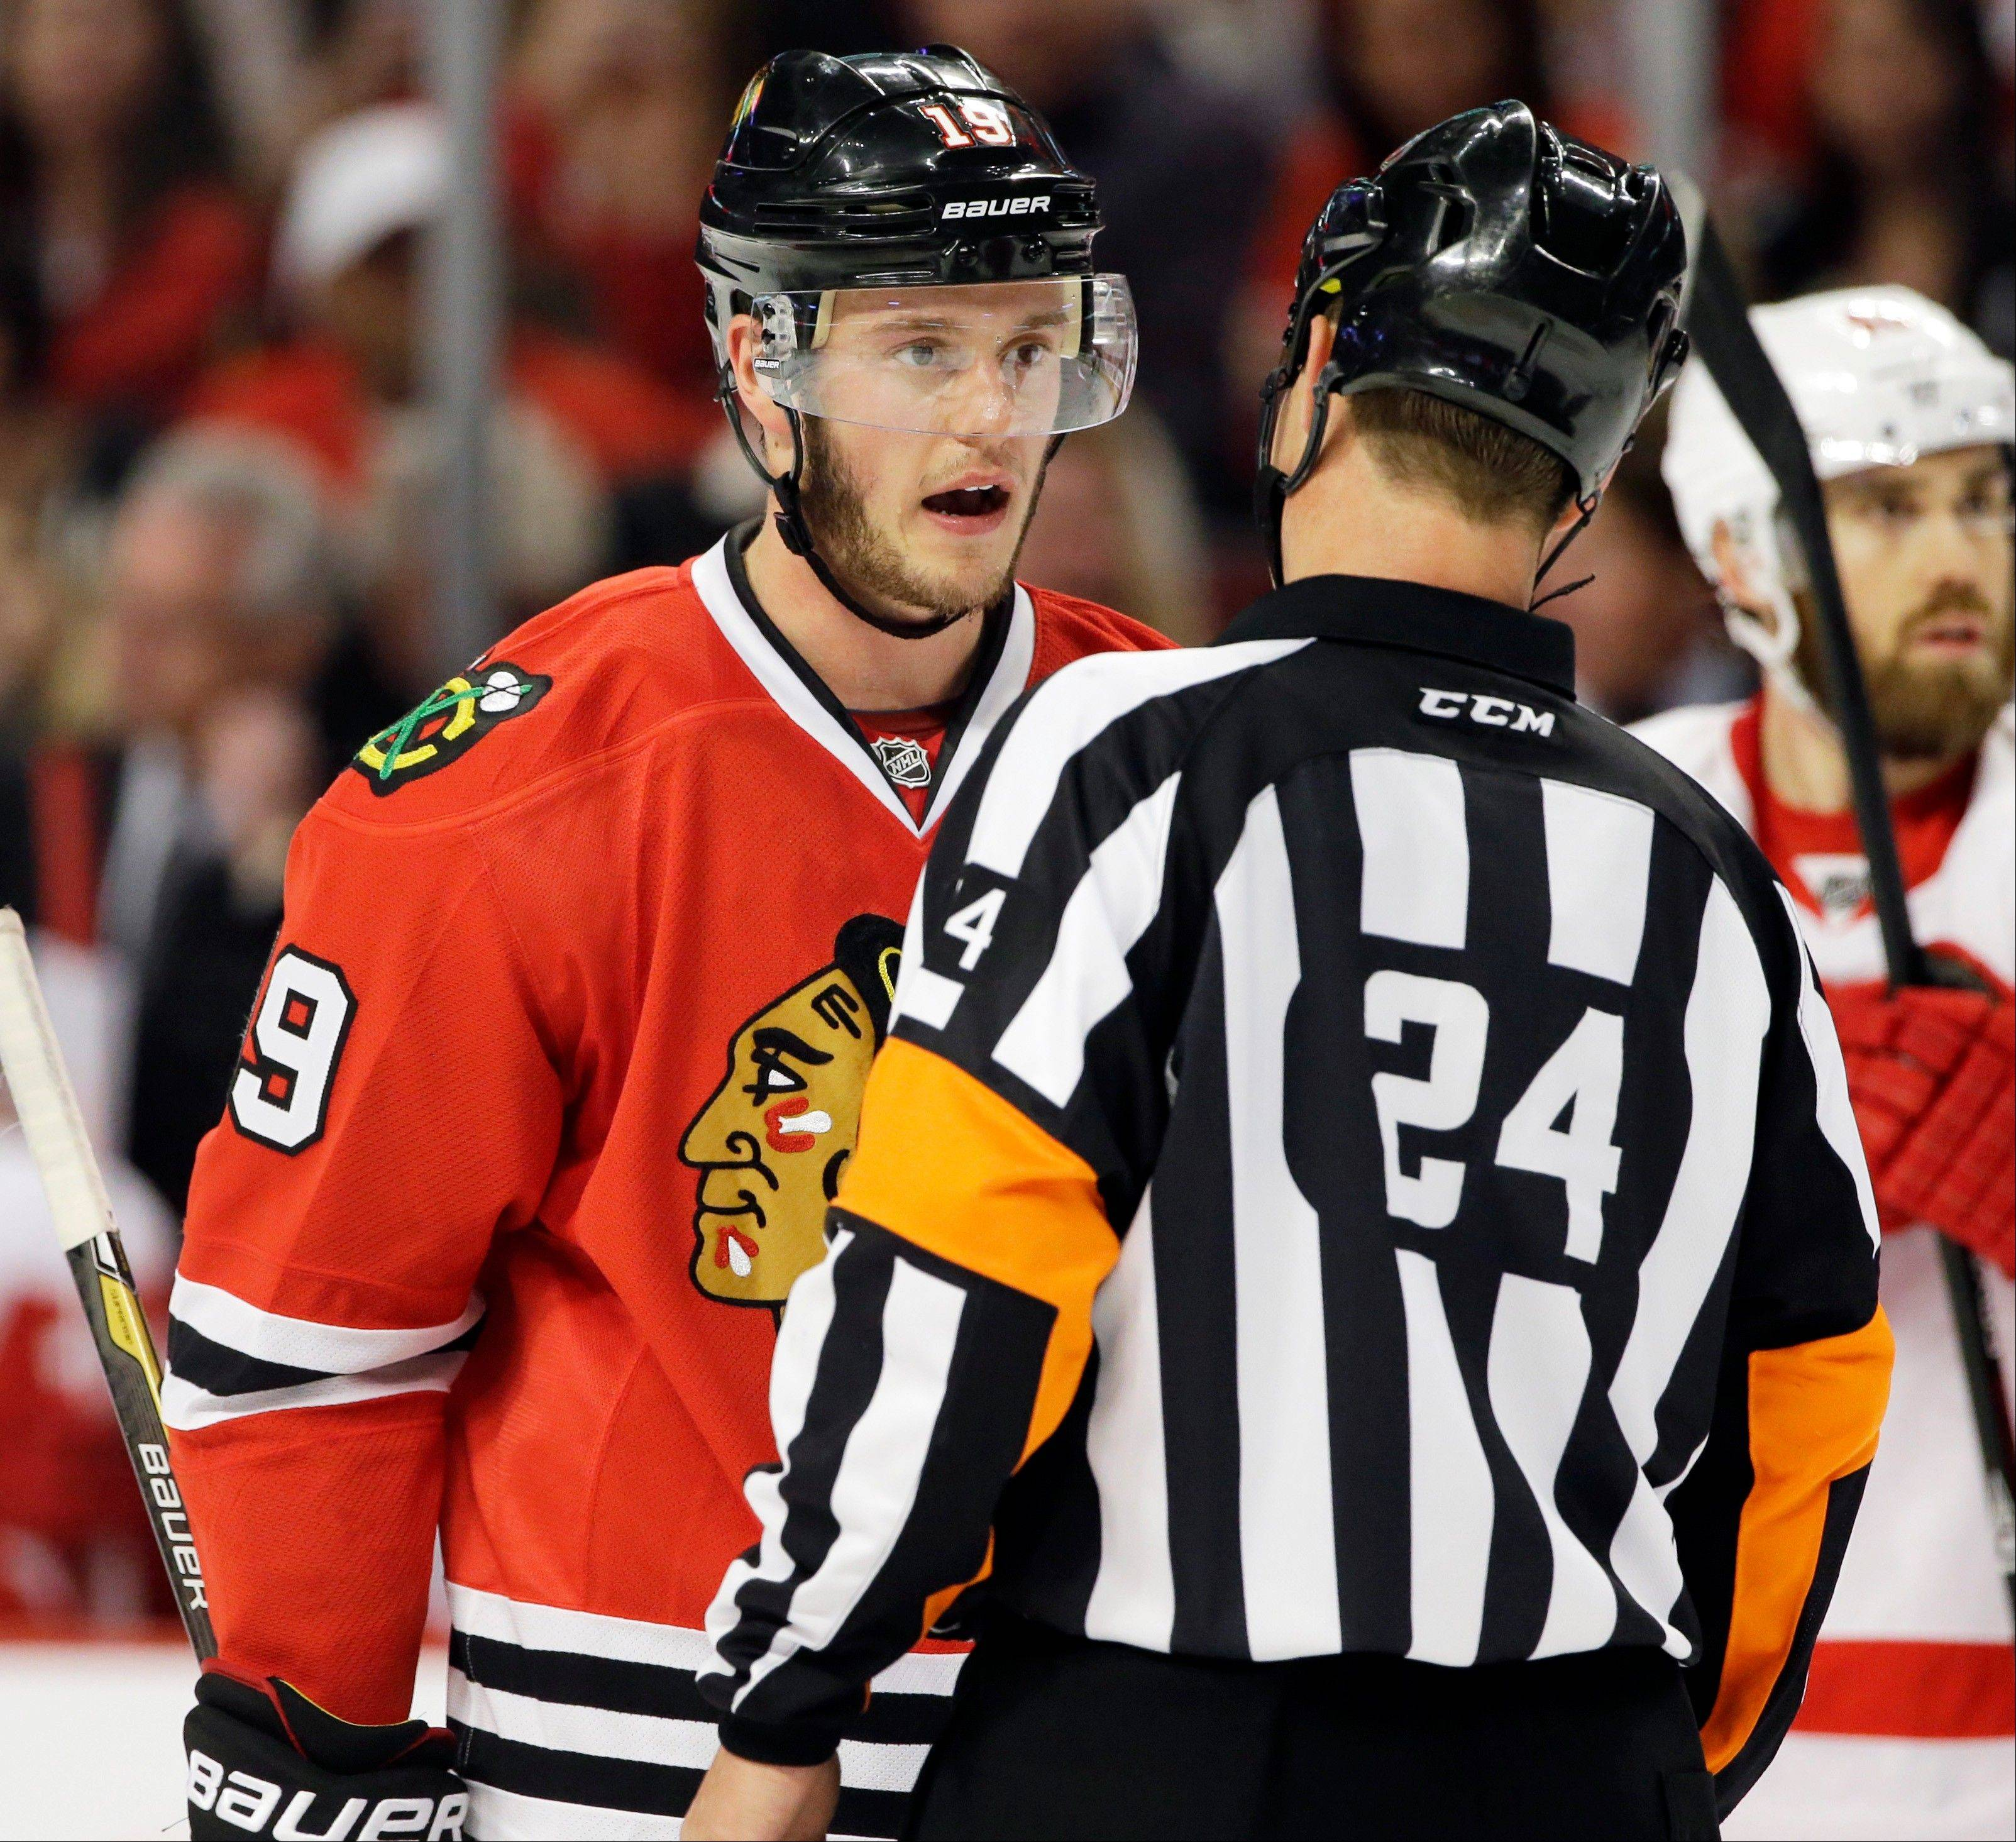 Jonathan Toews, left, talks with referee Stephen Walkom during the second period of Game 5 of the NHL hockey Stanley Cup playoffs Western Conference semifinals against the Detroit Red Wings in Chicago, Saturday, May 25, 2013.